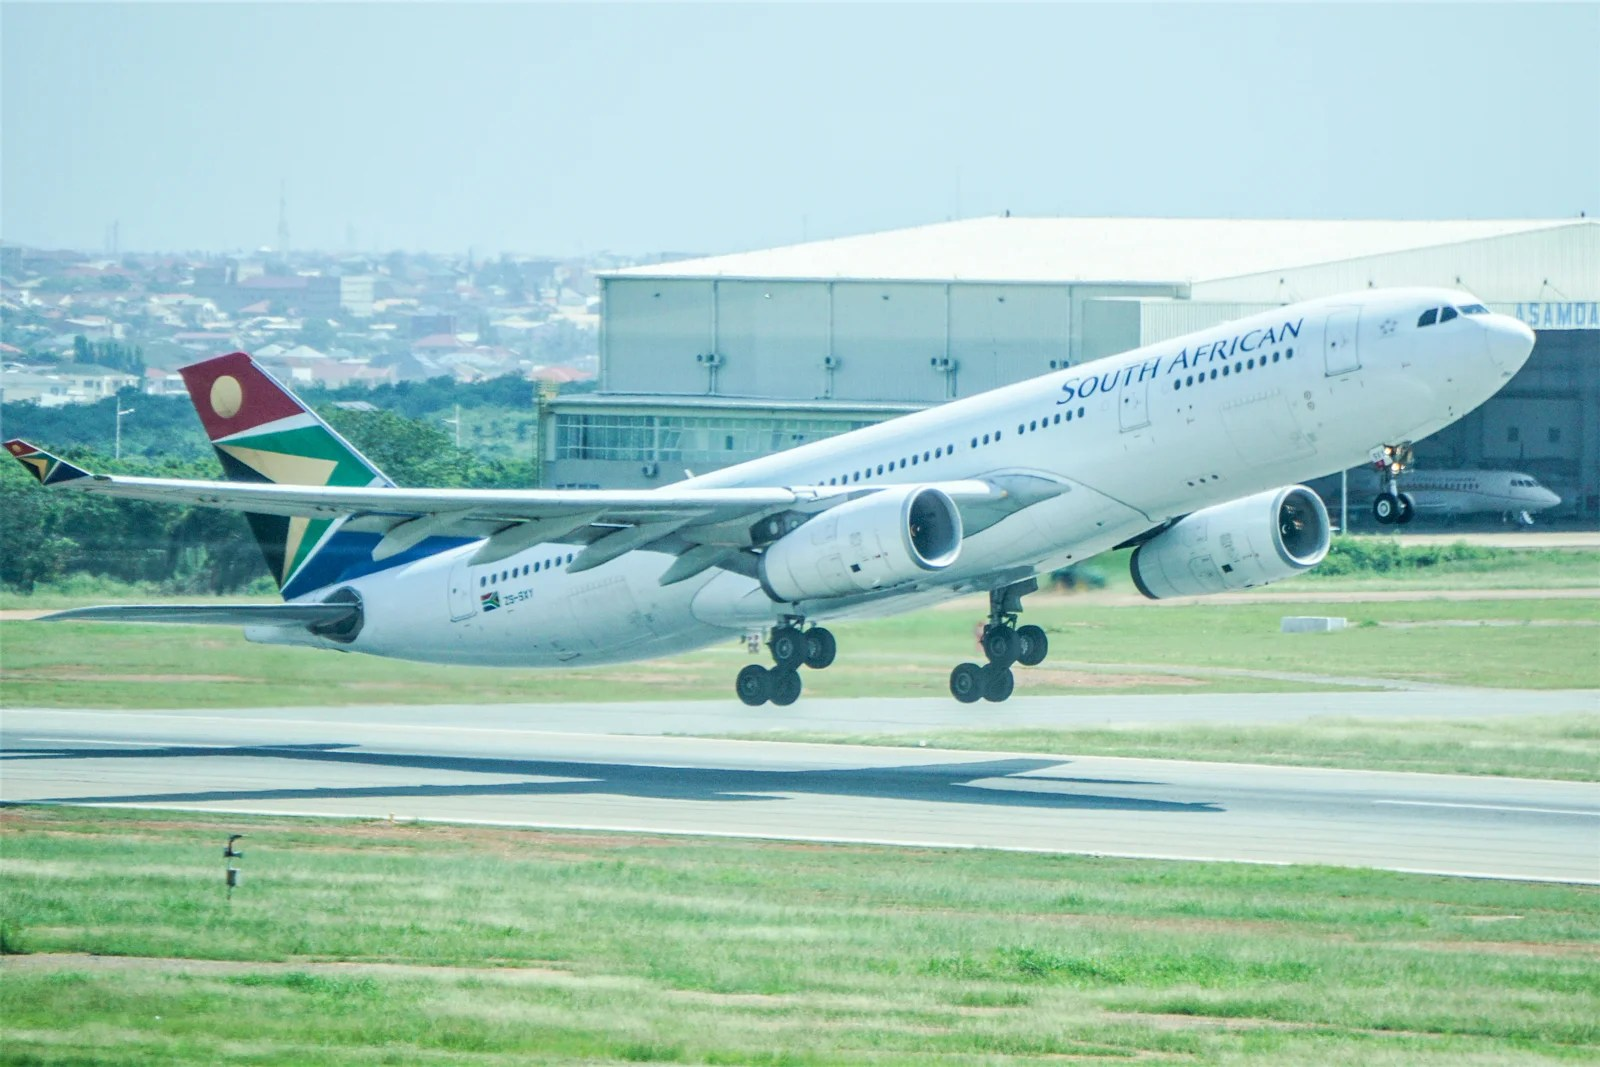 11 hours with no power: Review of South African Airways' A330 between Washington and Accra